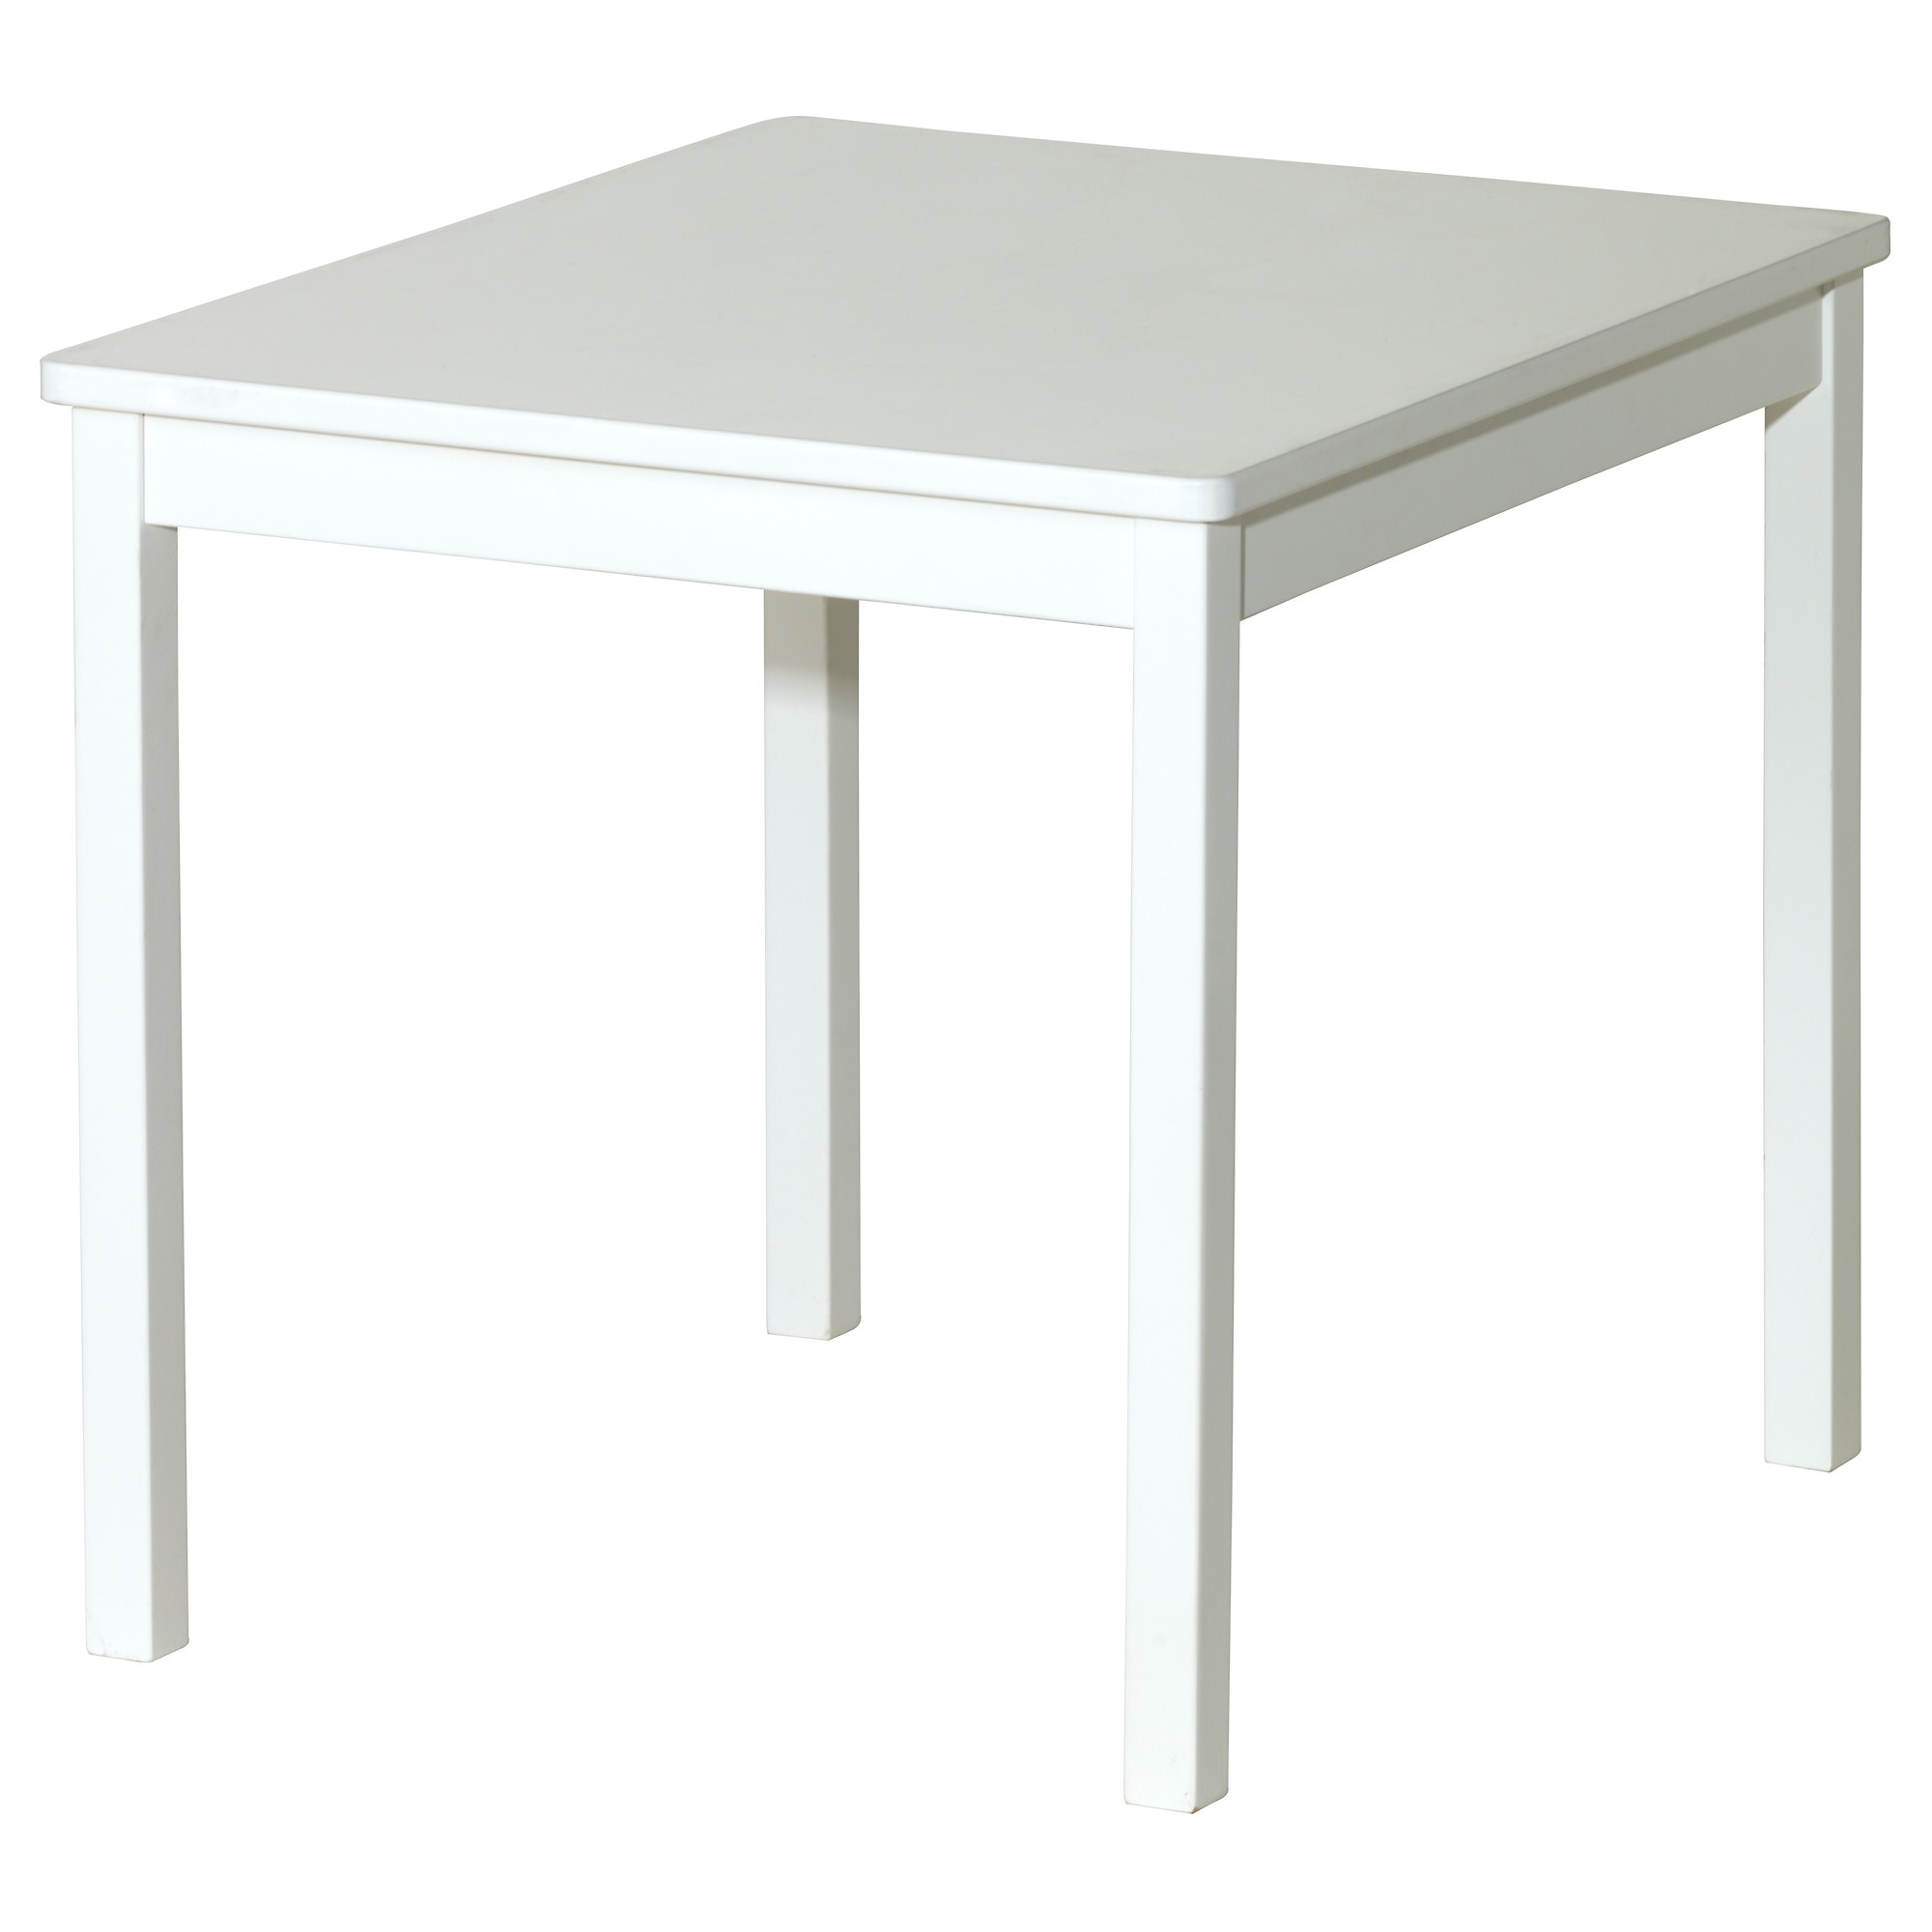 KRITTER Children s table IKEA